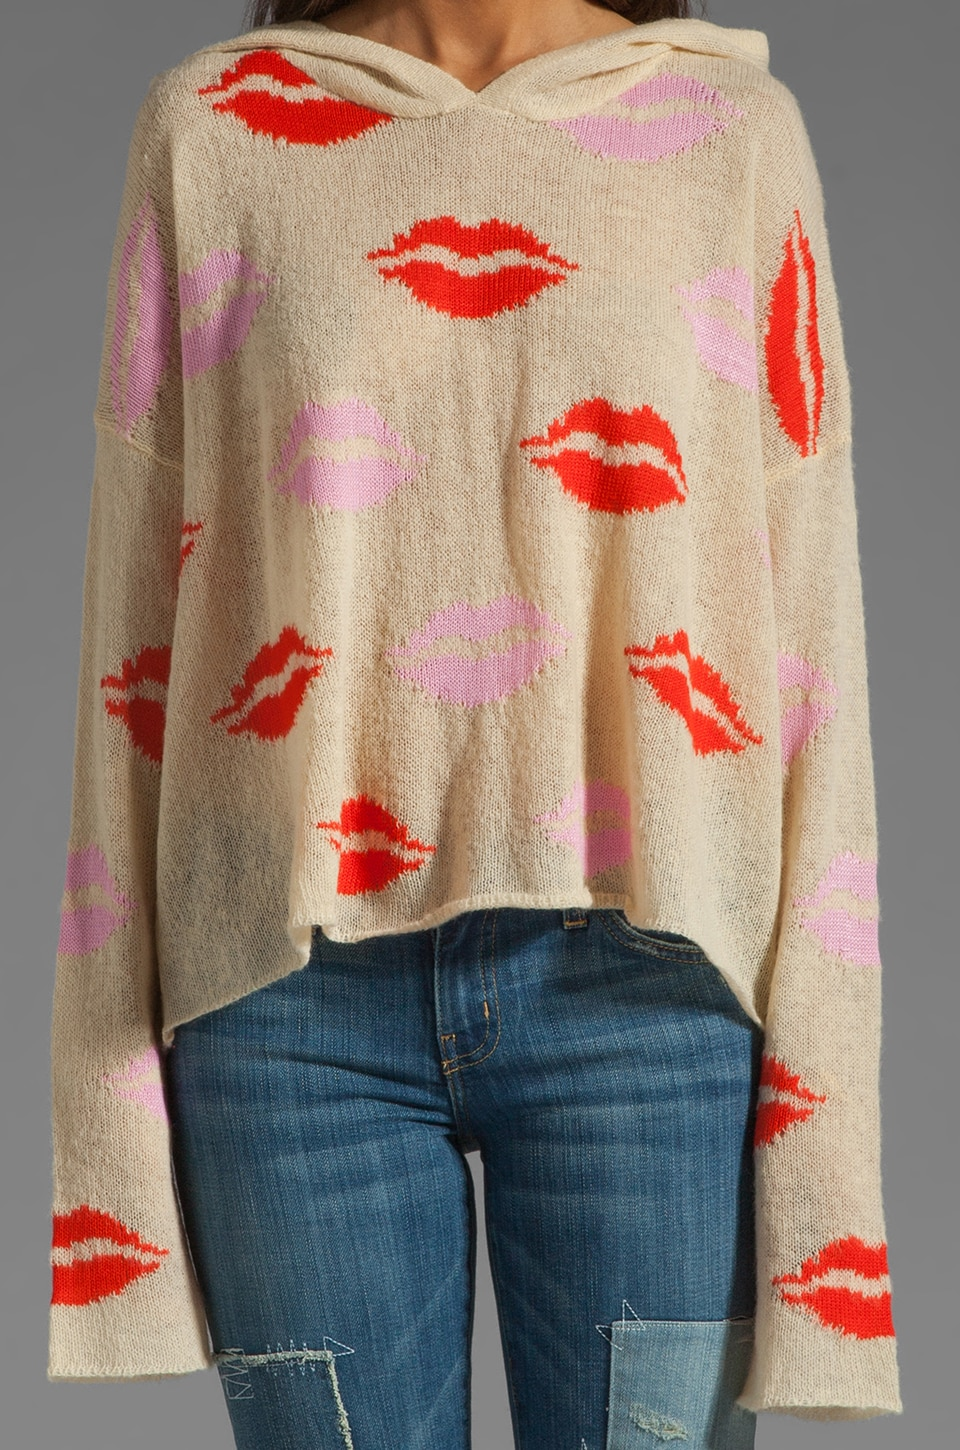 Wildfox Couture White Label Make Out Party Hooded Billy Sweater in Naked